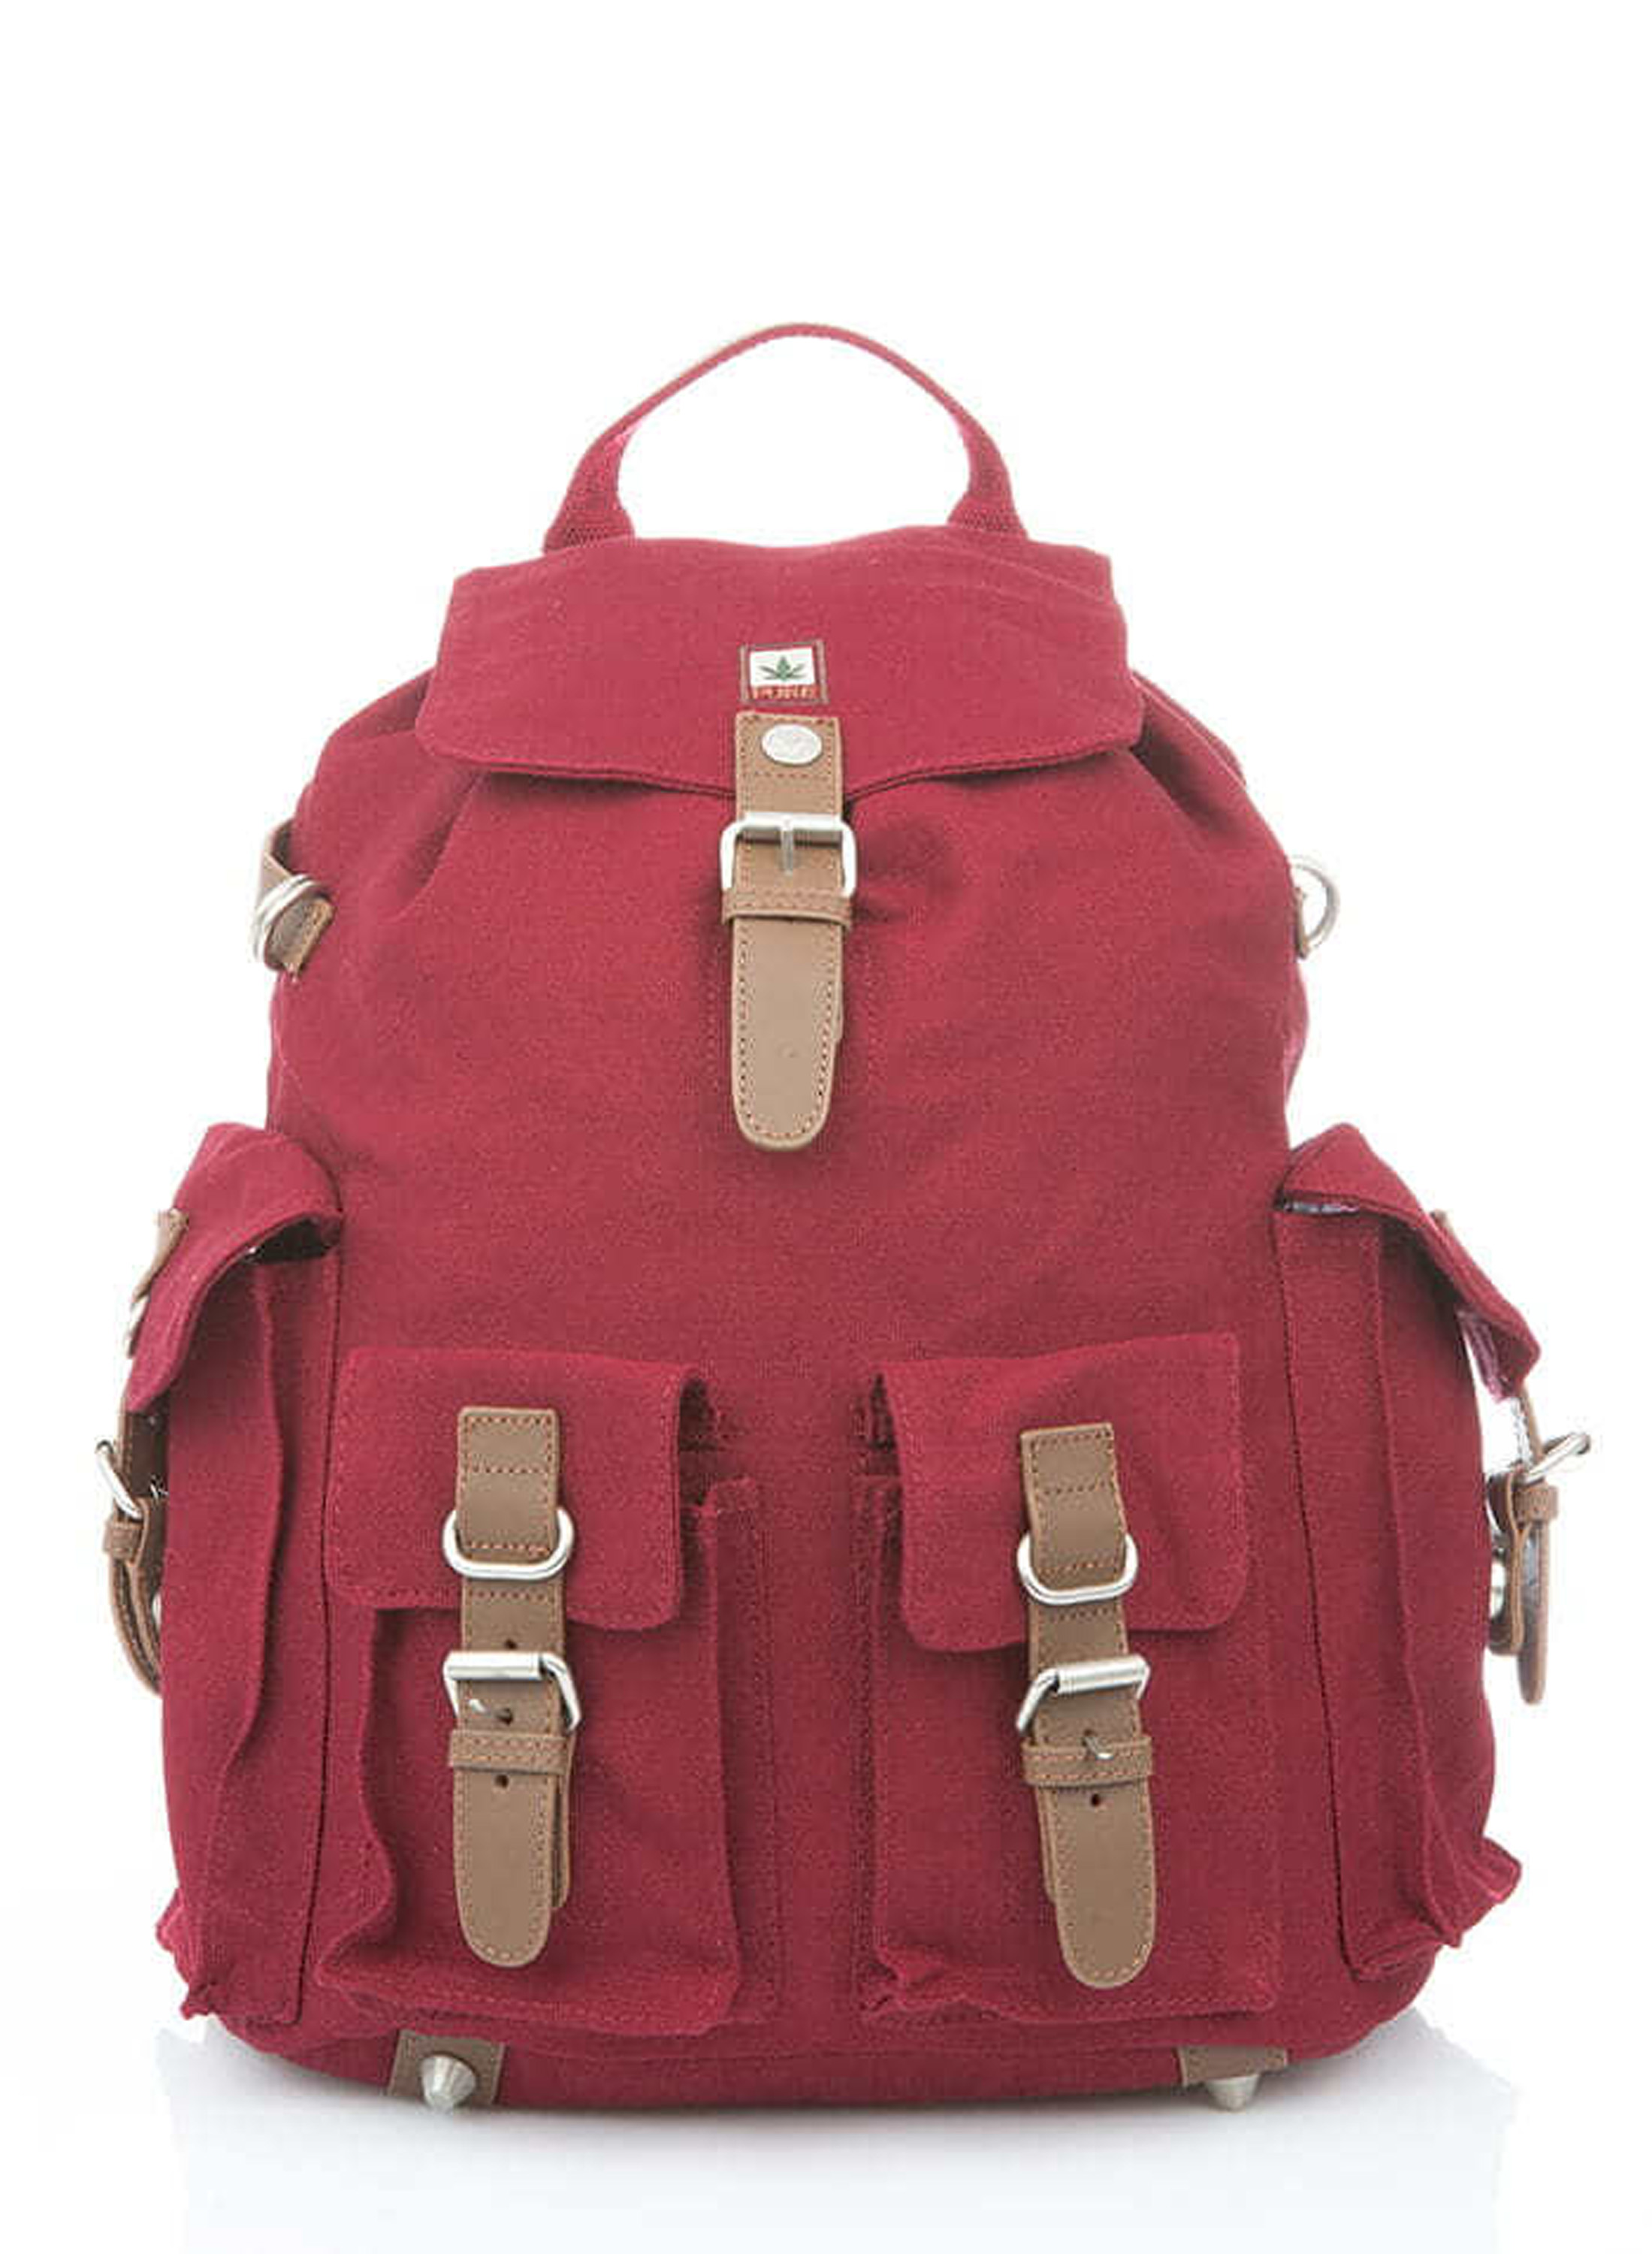 XL Backpack with 4 External Pockets HF-0017